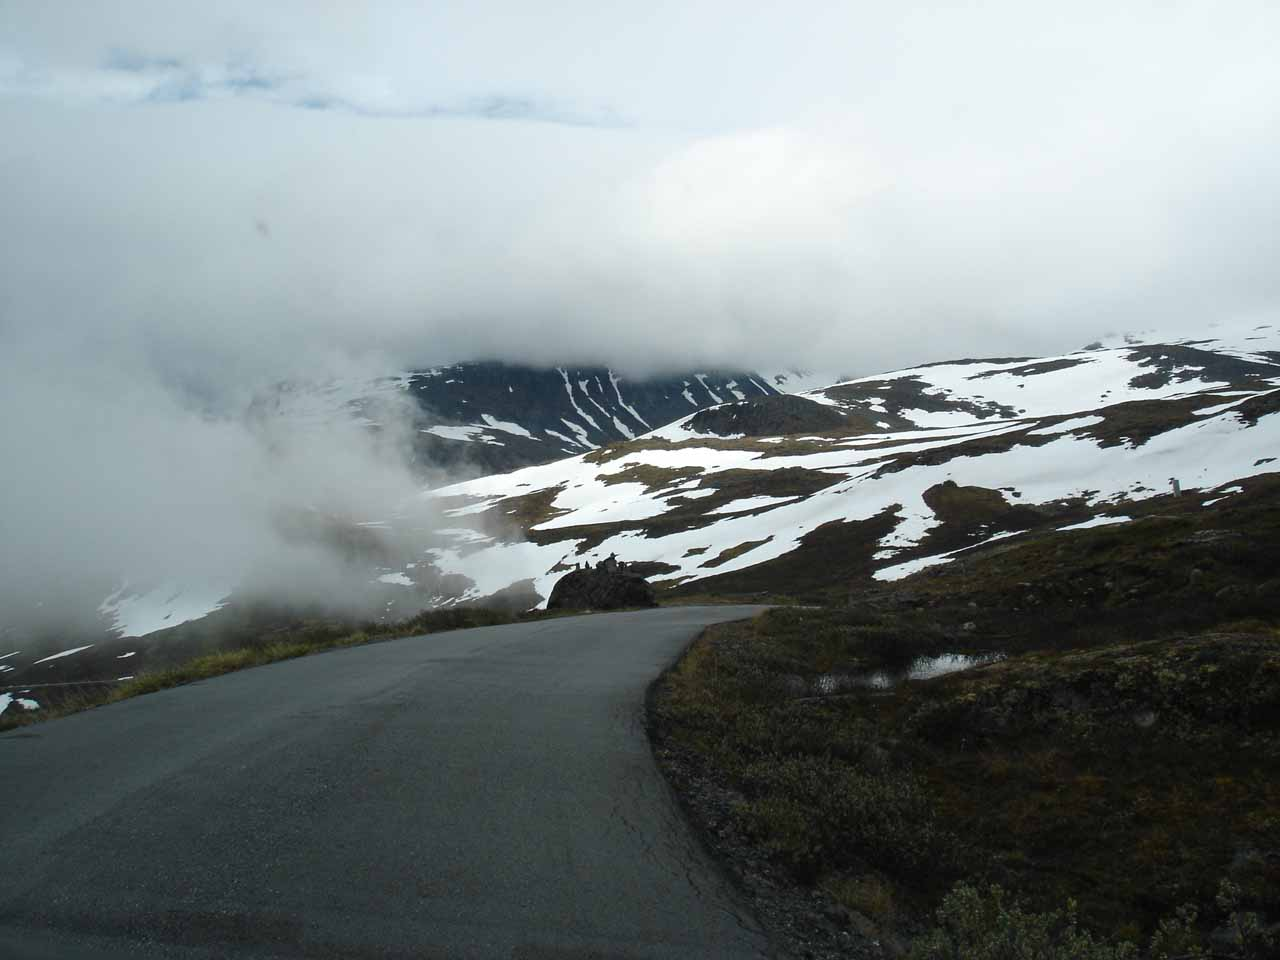 Now, the highland moors route started to descend while the clouds also started to part